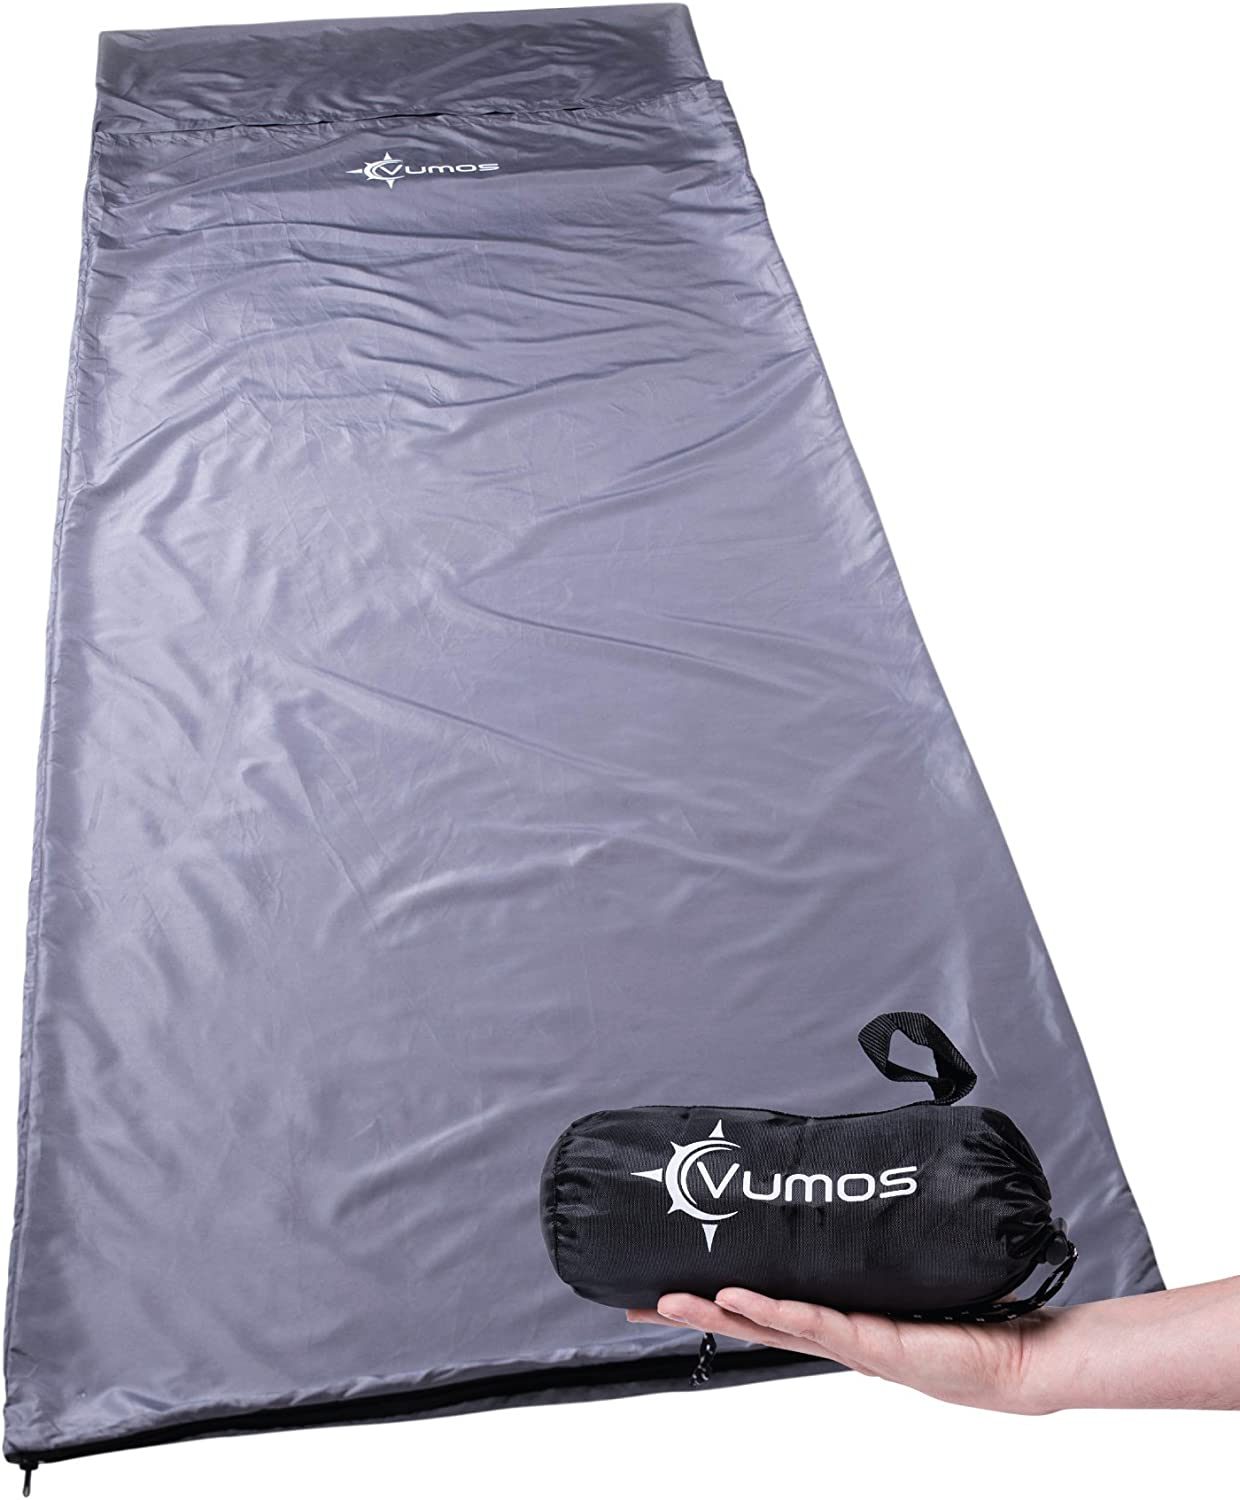 Vumos Sleeping Bag Liner and Camping Sheet Silk Like Material for Travel – Has Full Length Zipper